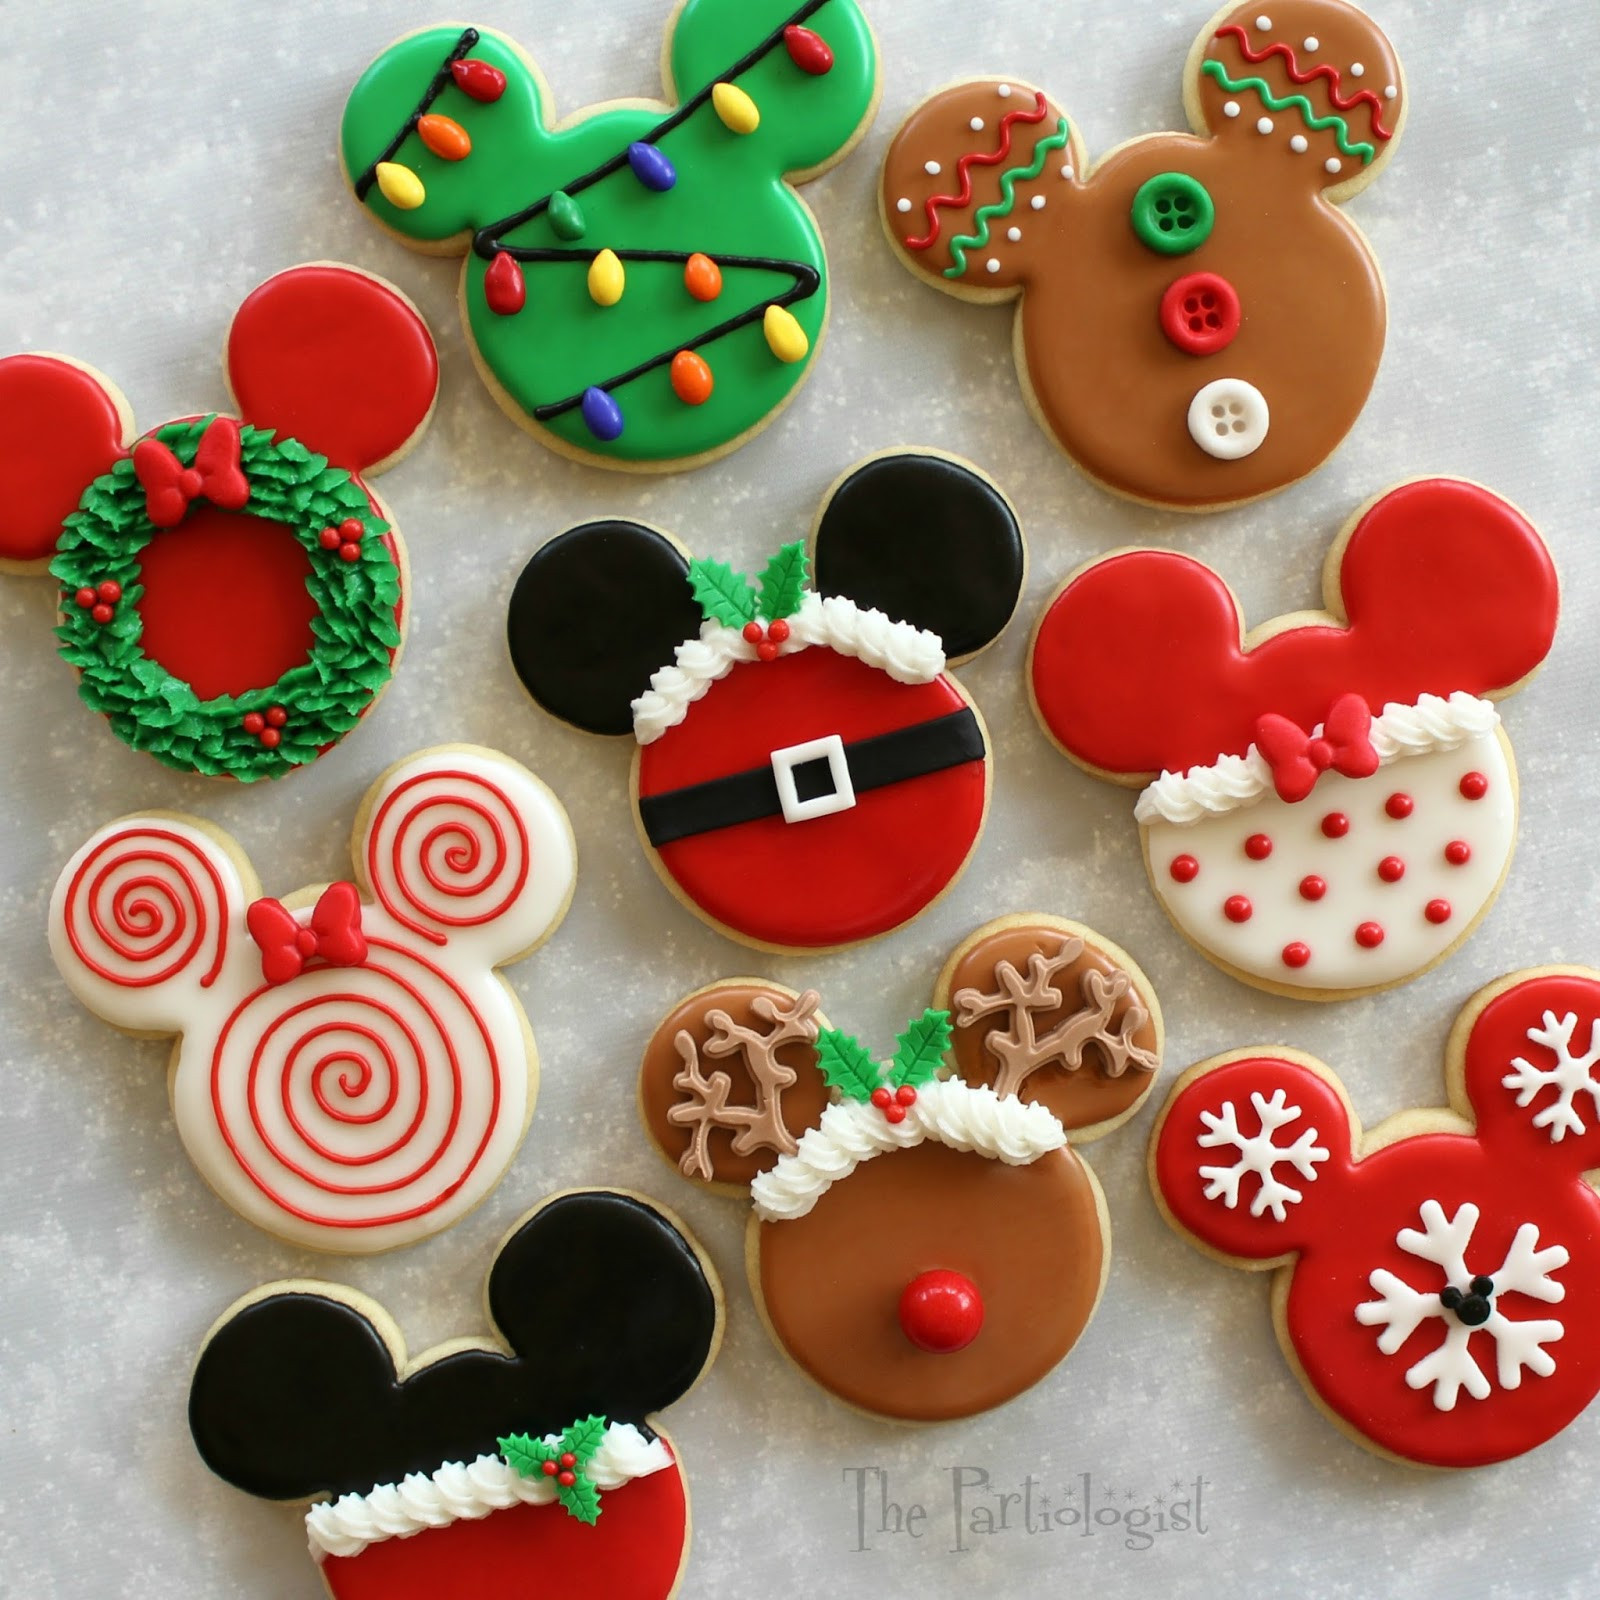 Make Christmas Cookies  The Partiologist Disney Themed Christmas Cookies